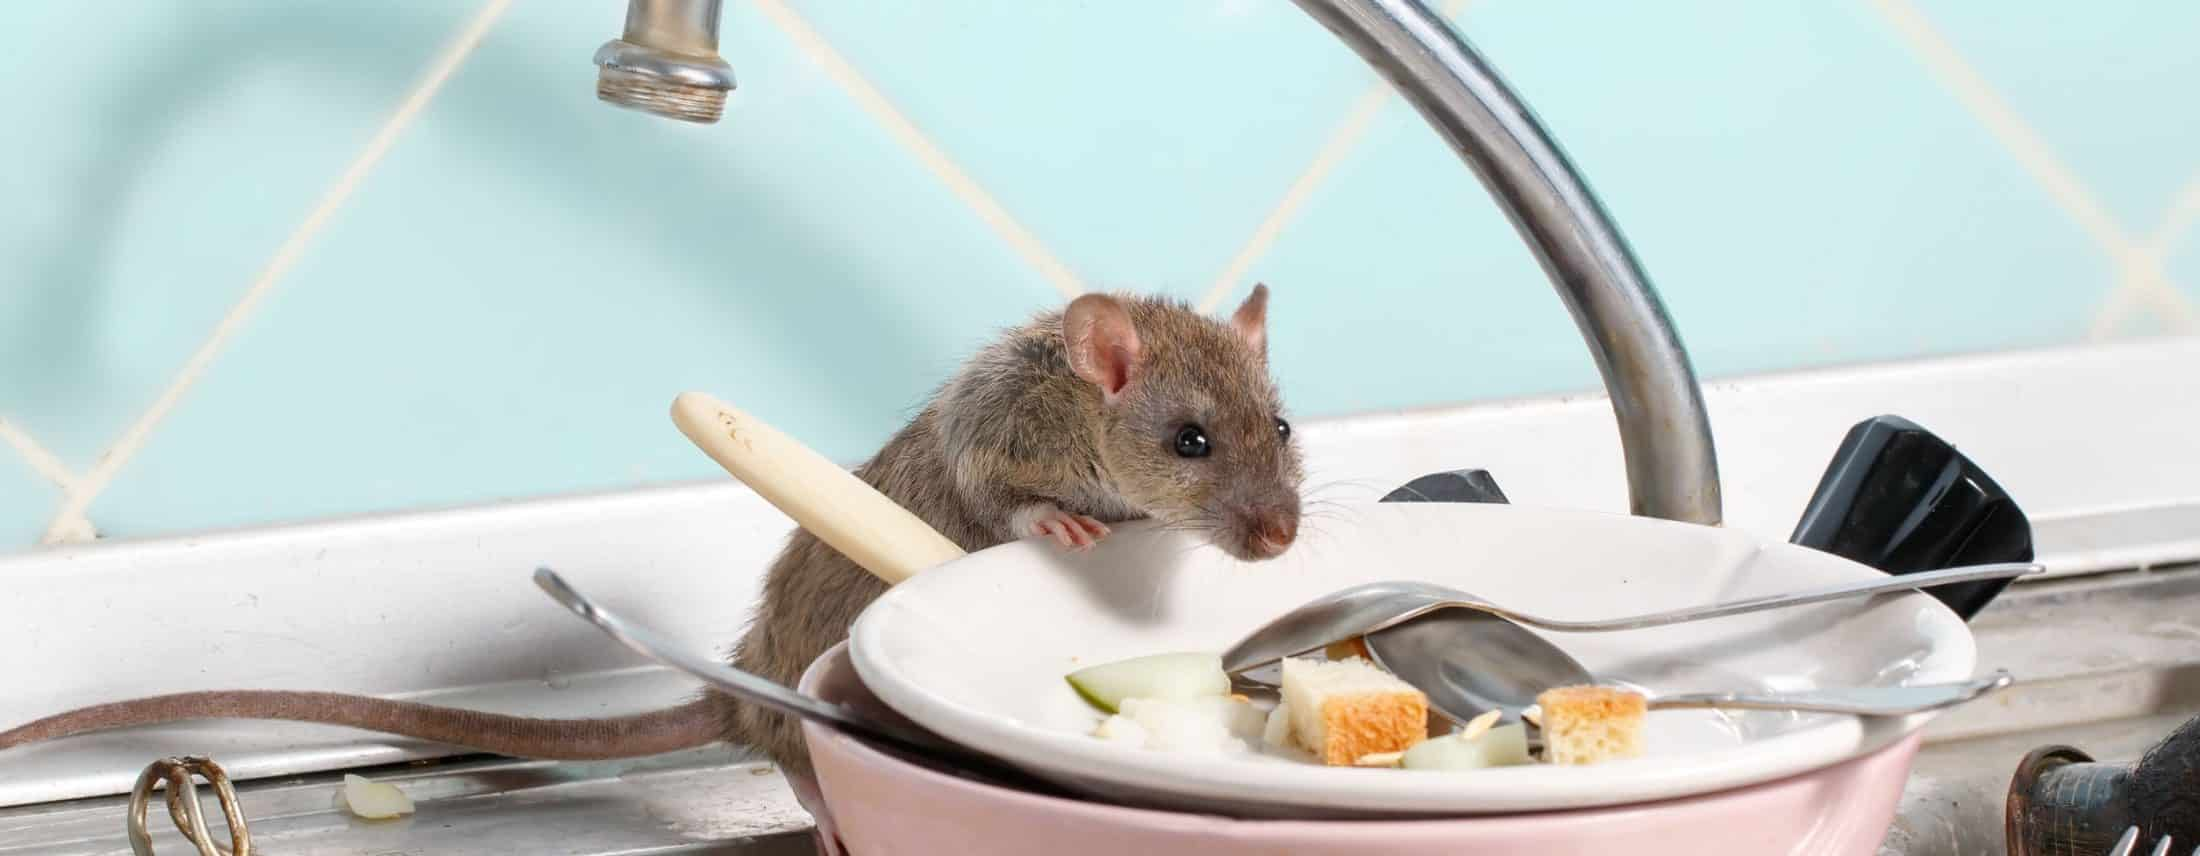 Rat climbing on dishes in a kitchen